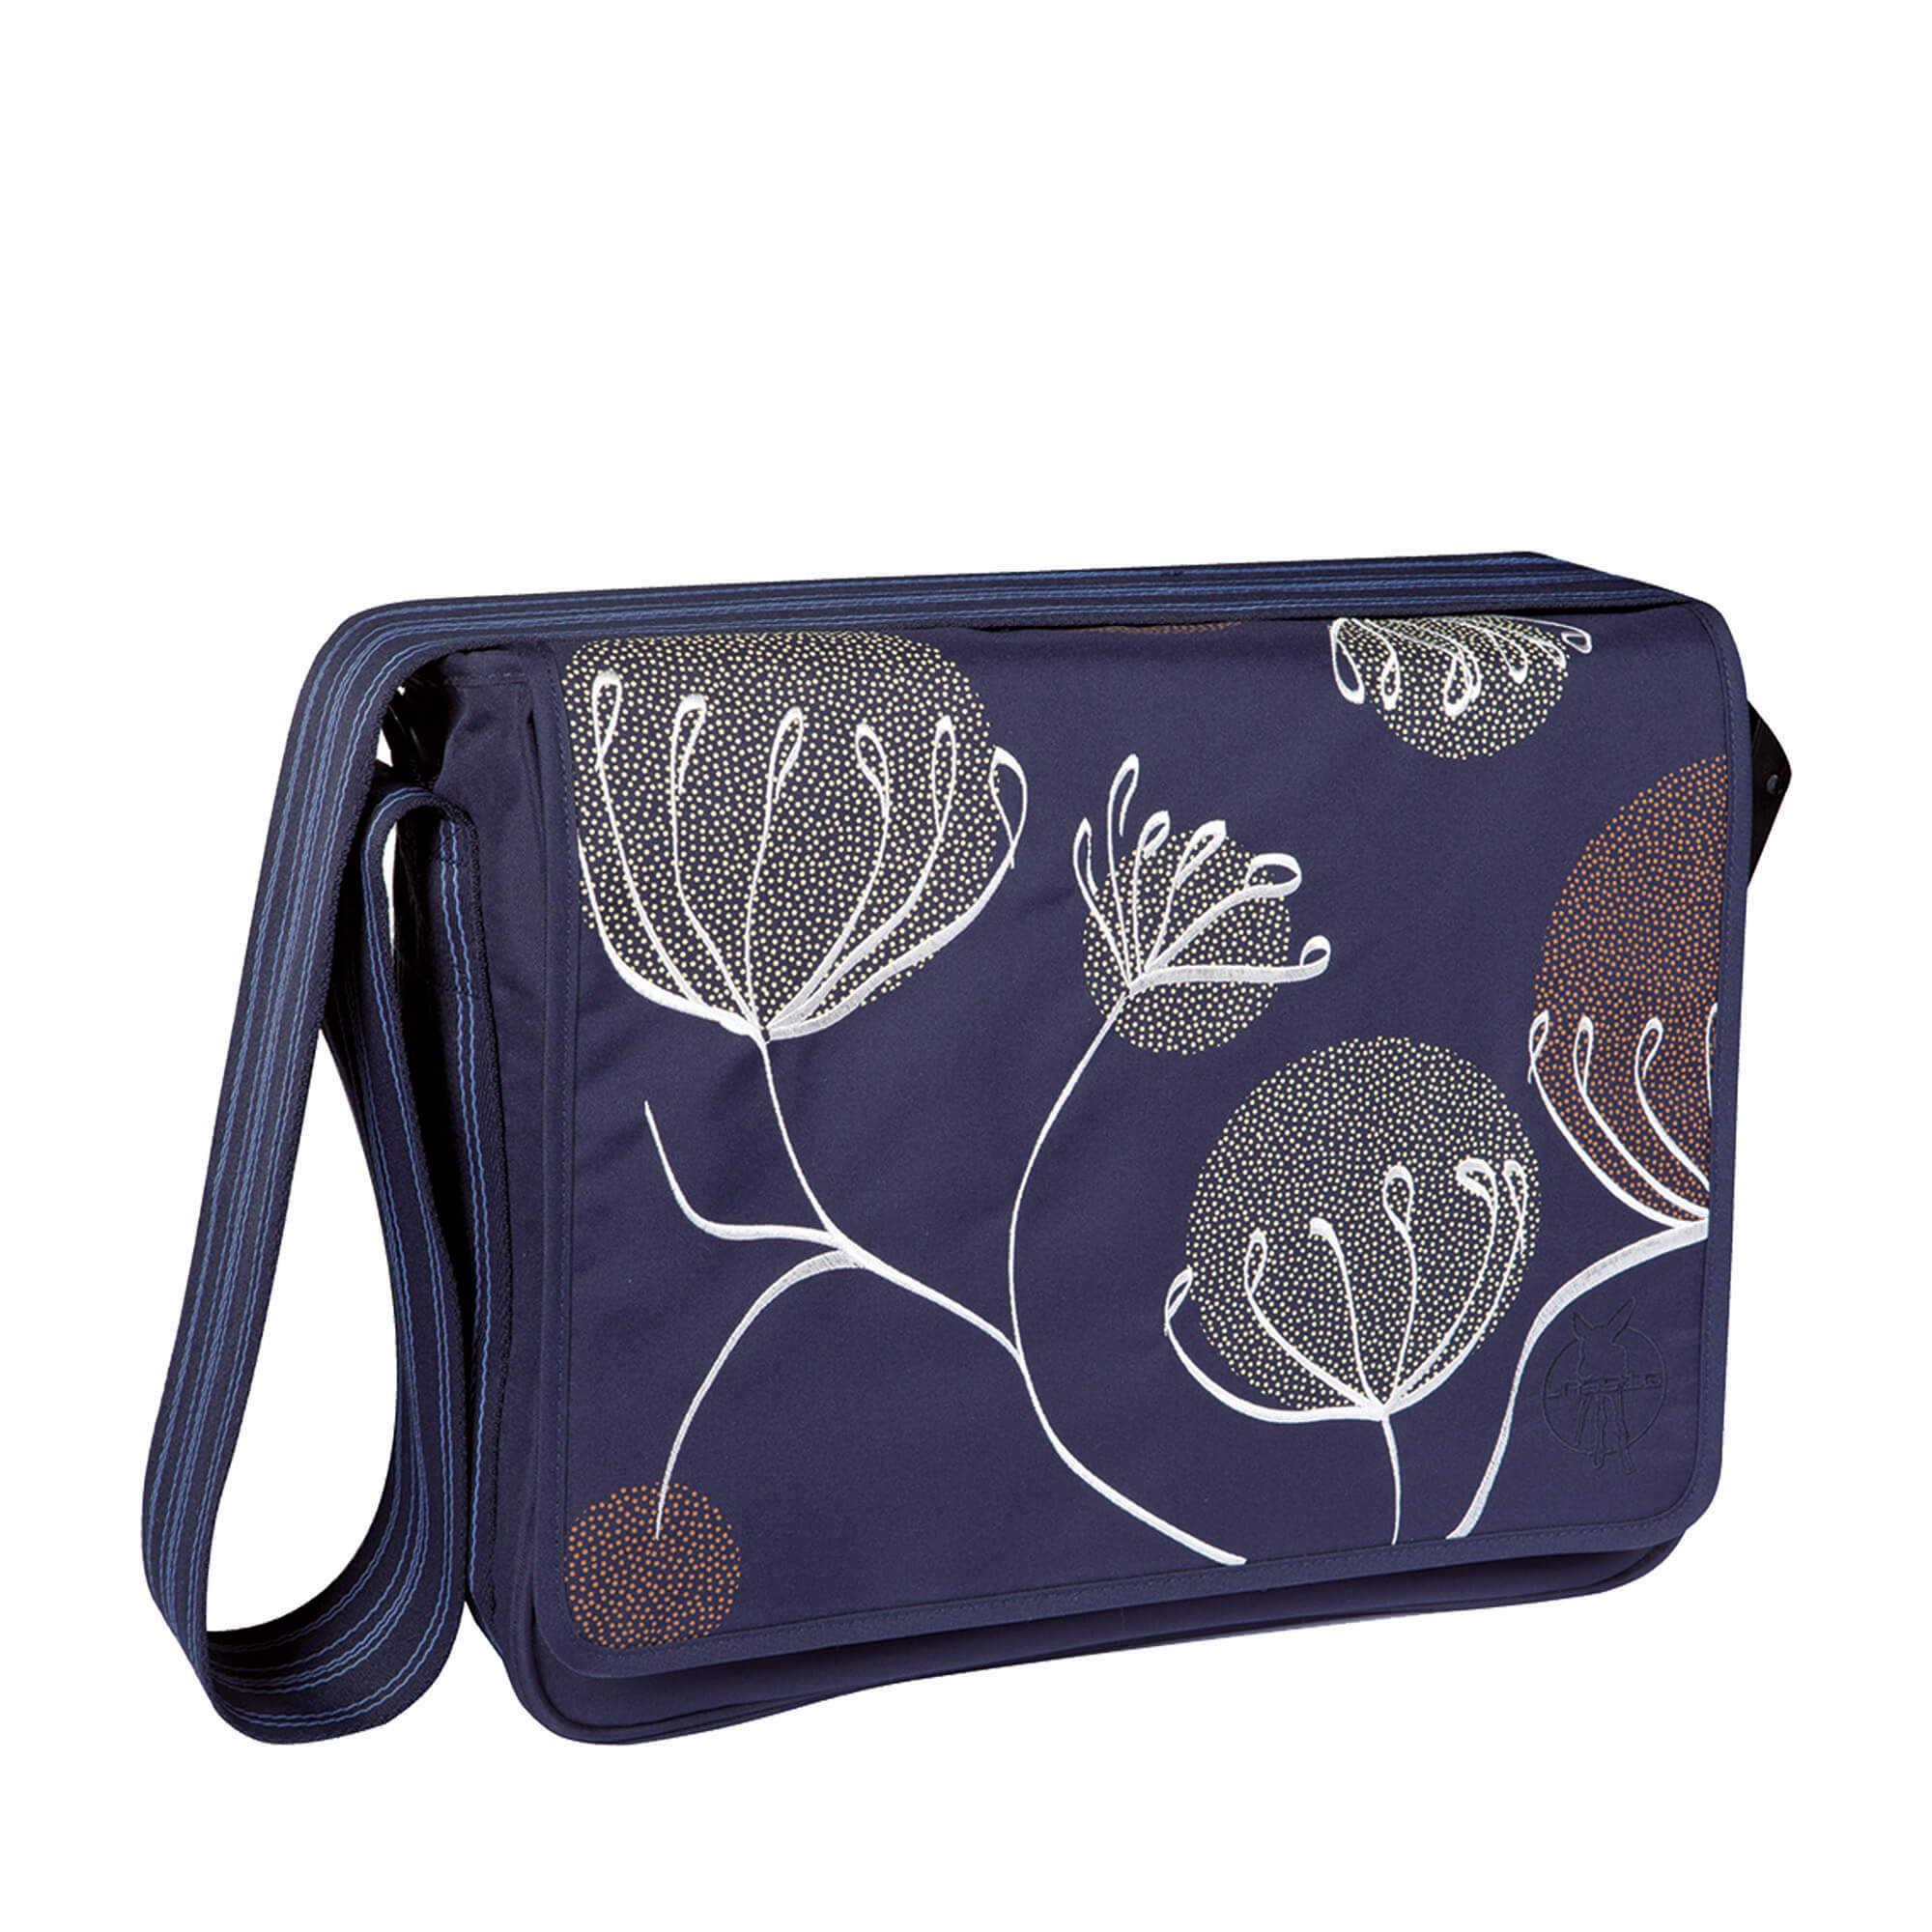 Rabat interchangeable Lassig Messenger Bag Casual Bloom ash bleu